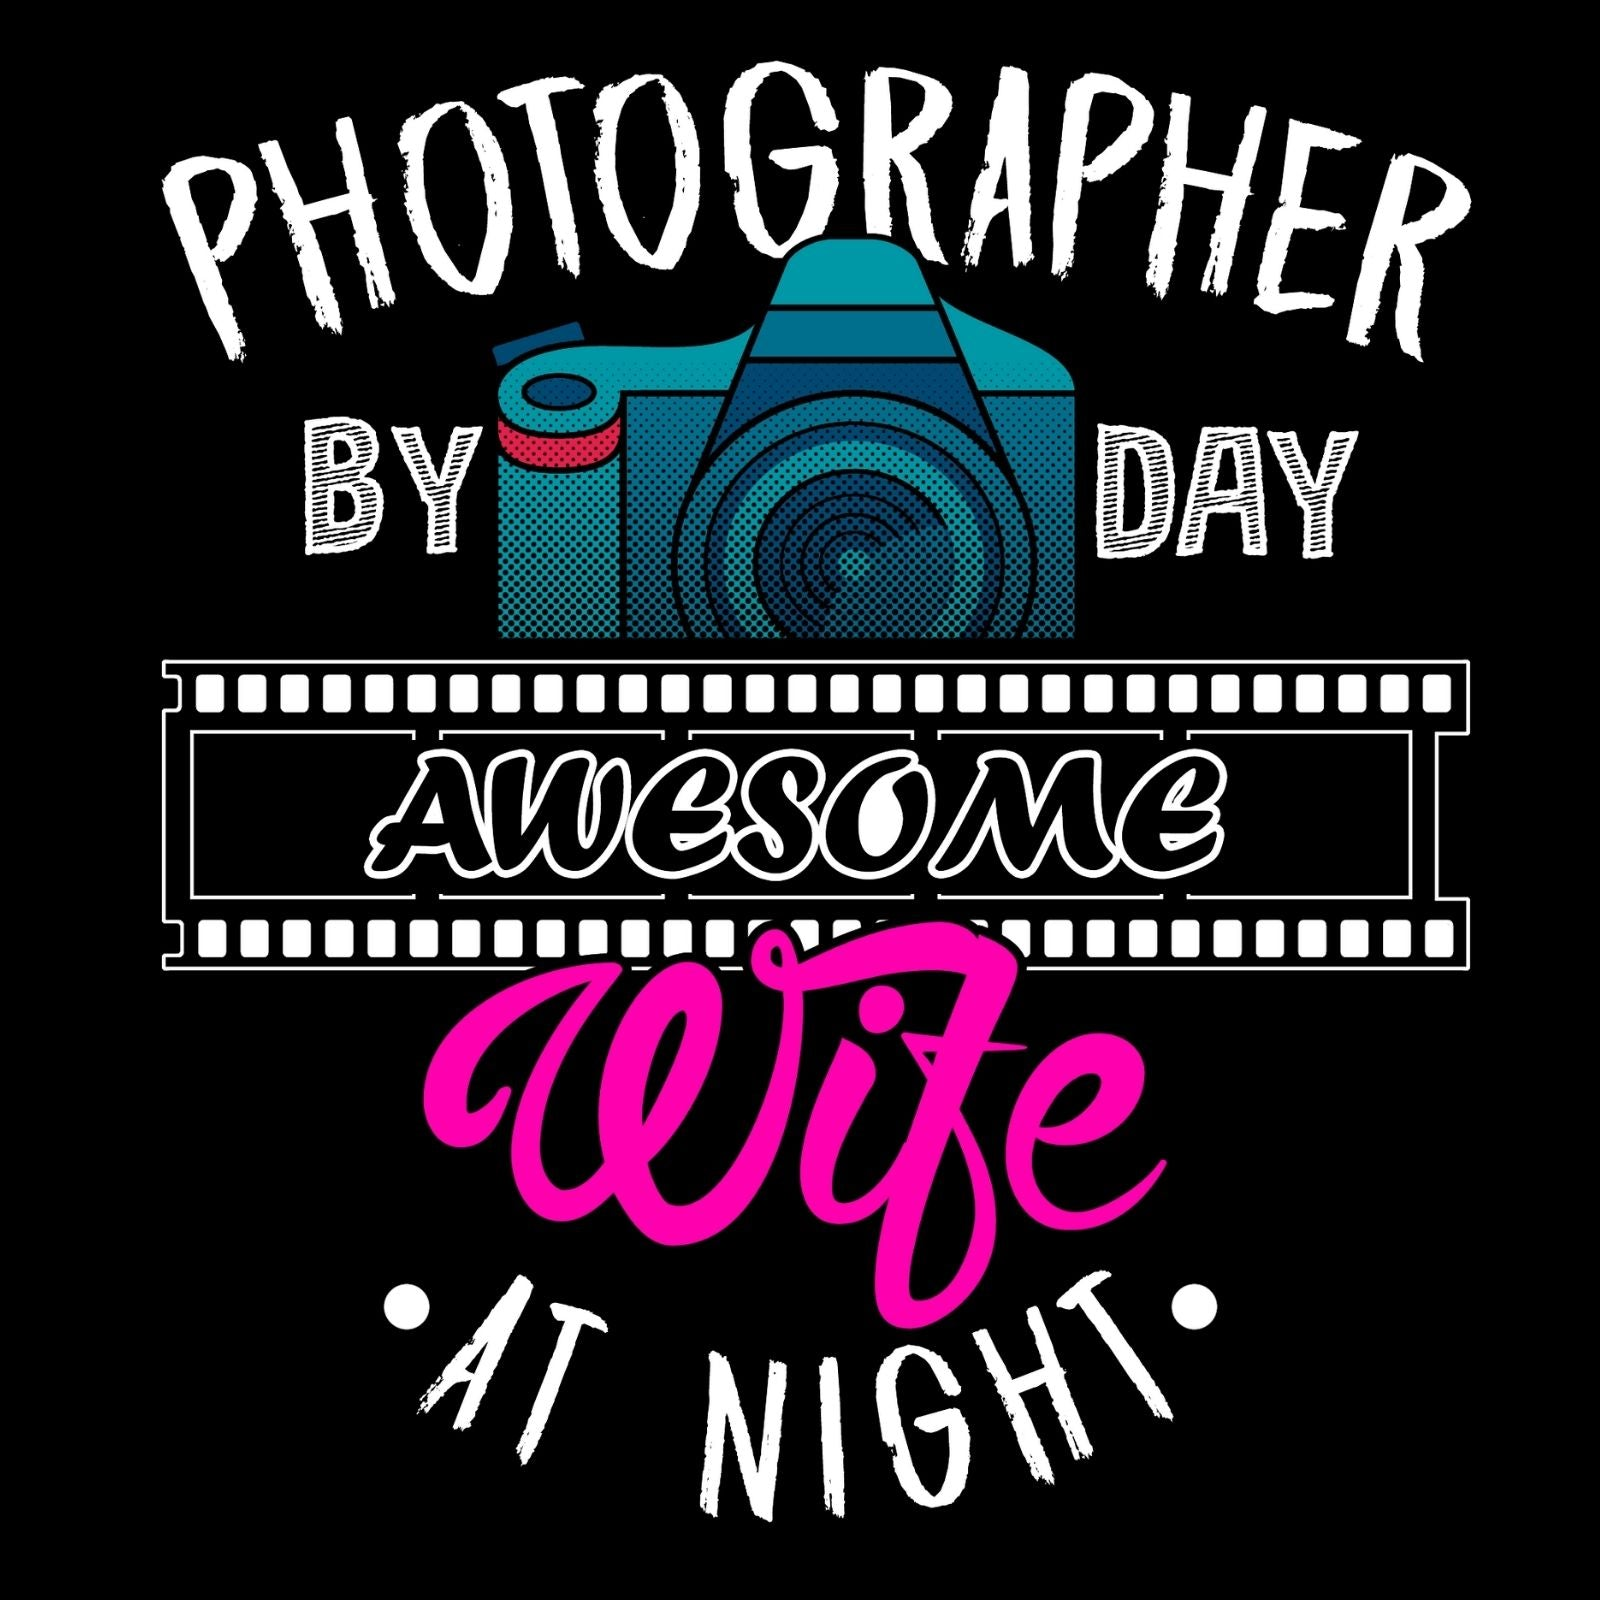 Photographer By Day Awesome Wife At Night - Bastard Graphics